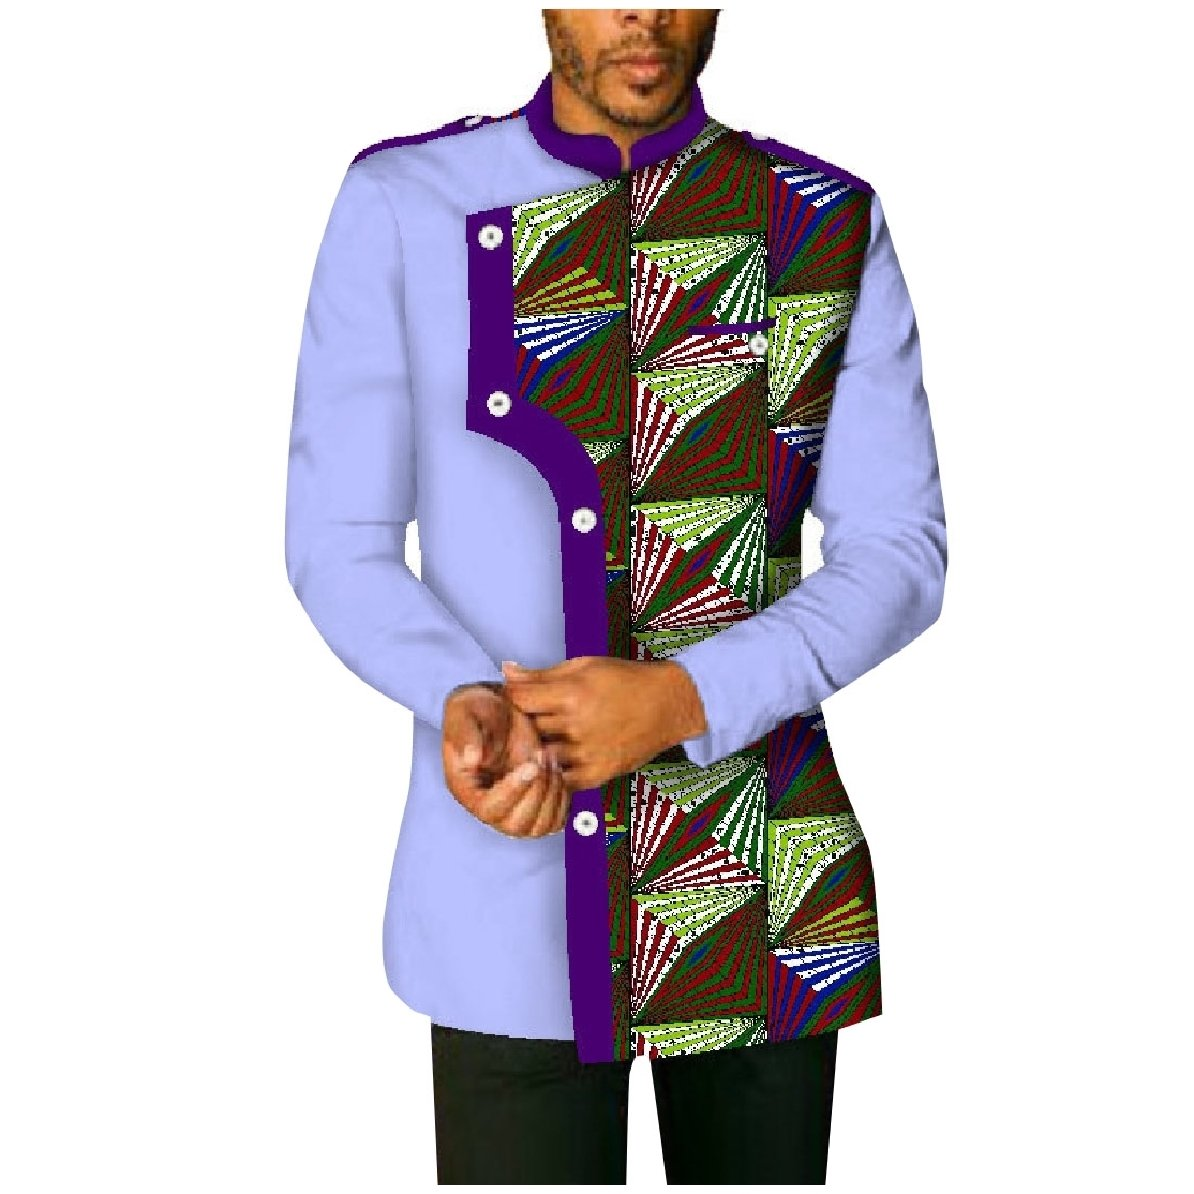 YUNY Mens Plus-Size Cotton African Printed Long-Sleeve Western Shirt Purple 2XL